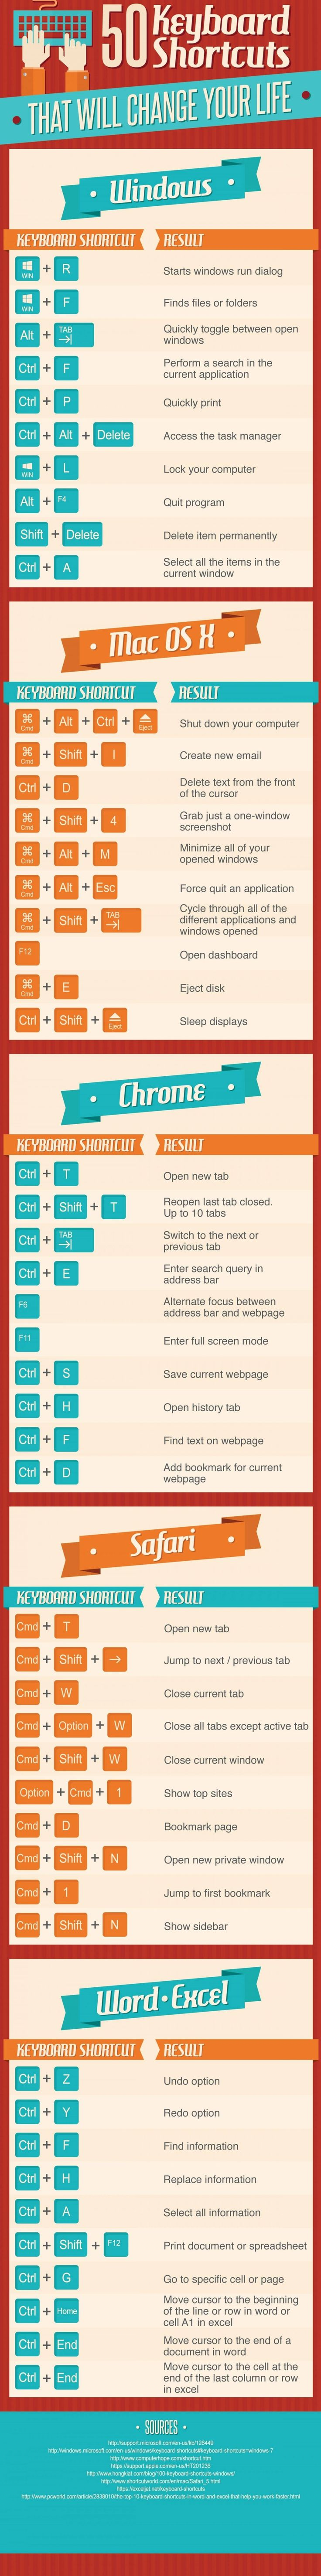 Keyboard Shortcuts for MacOS - Keyboard Shortcuts for Windows